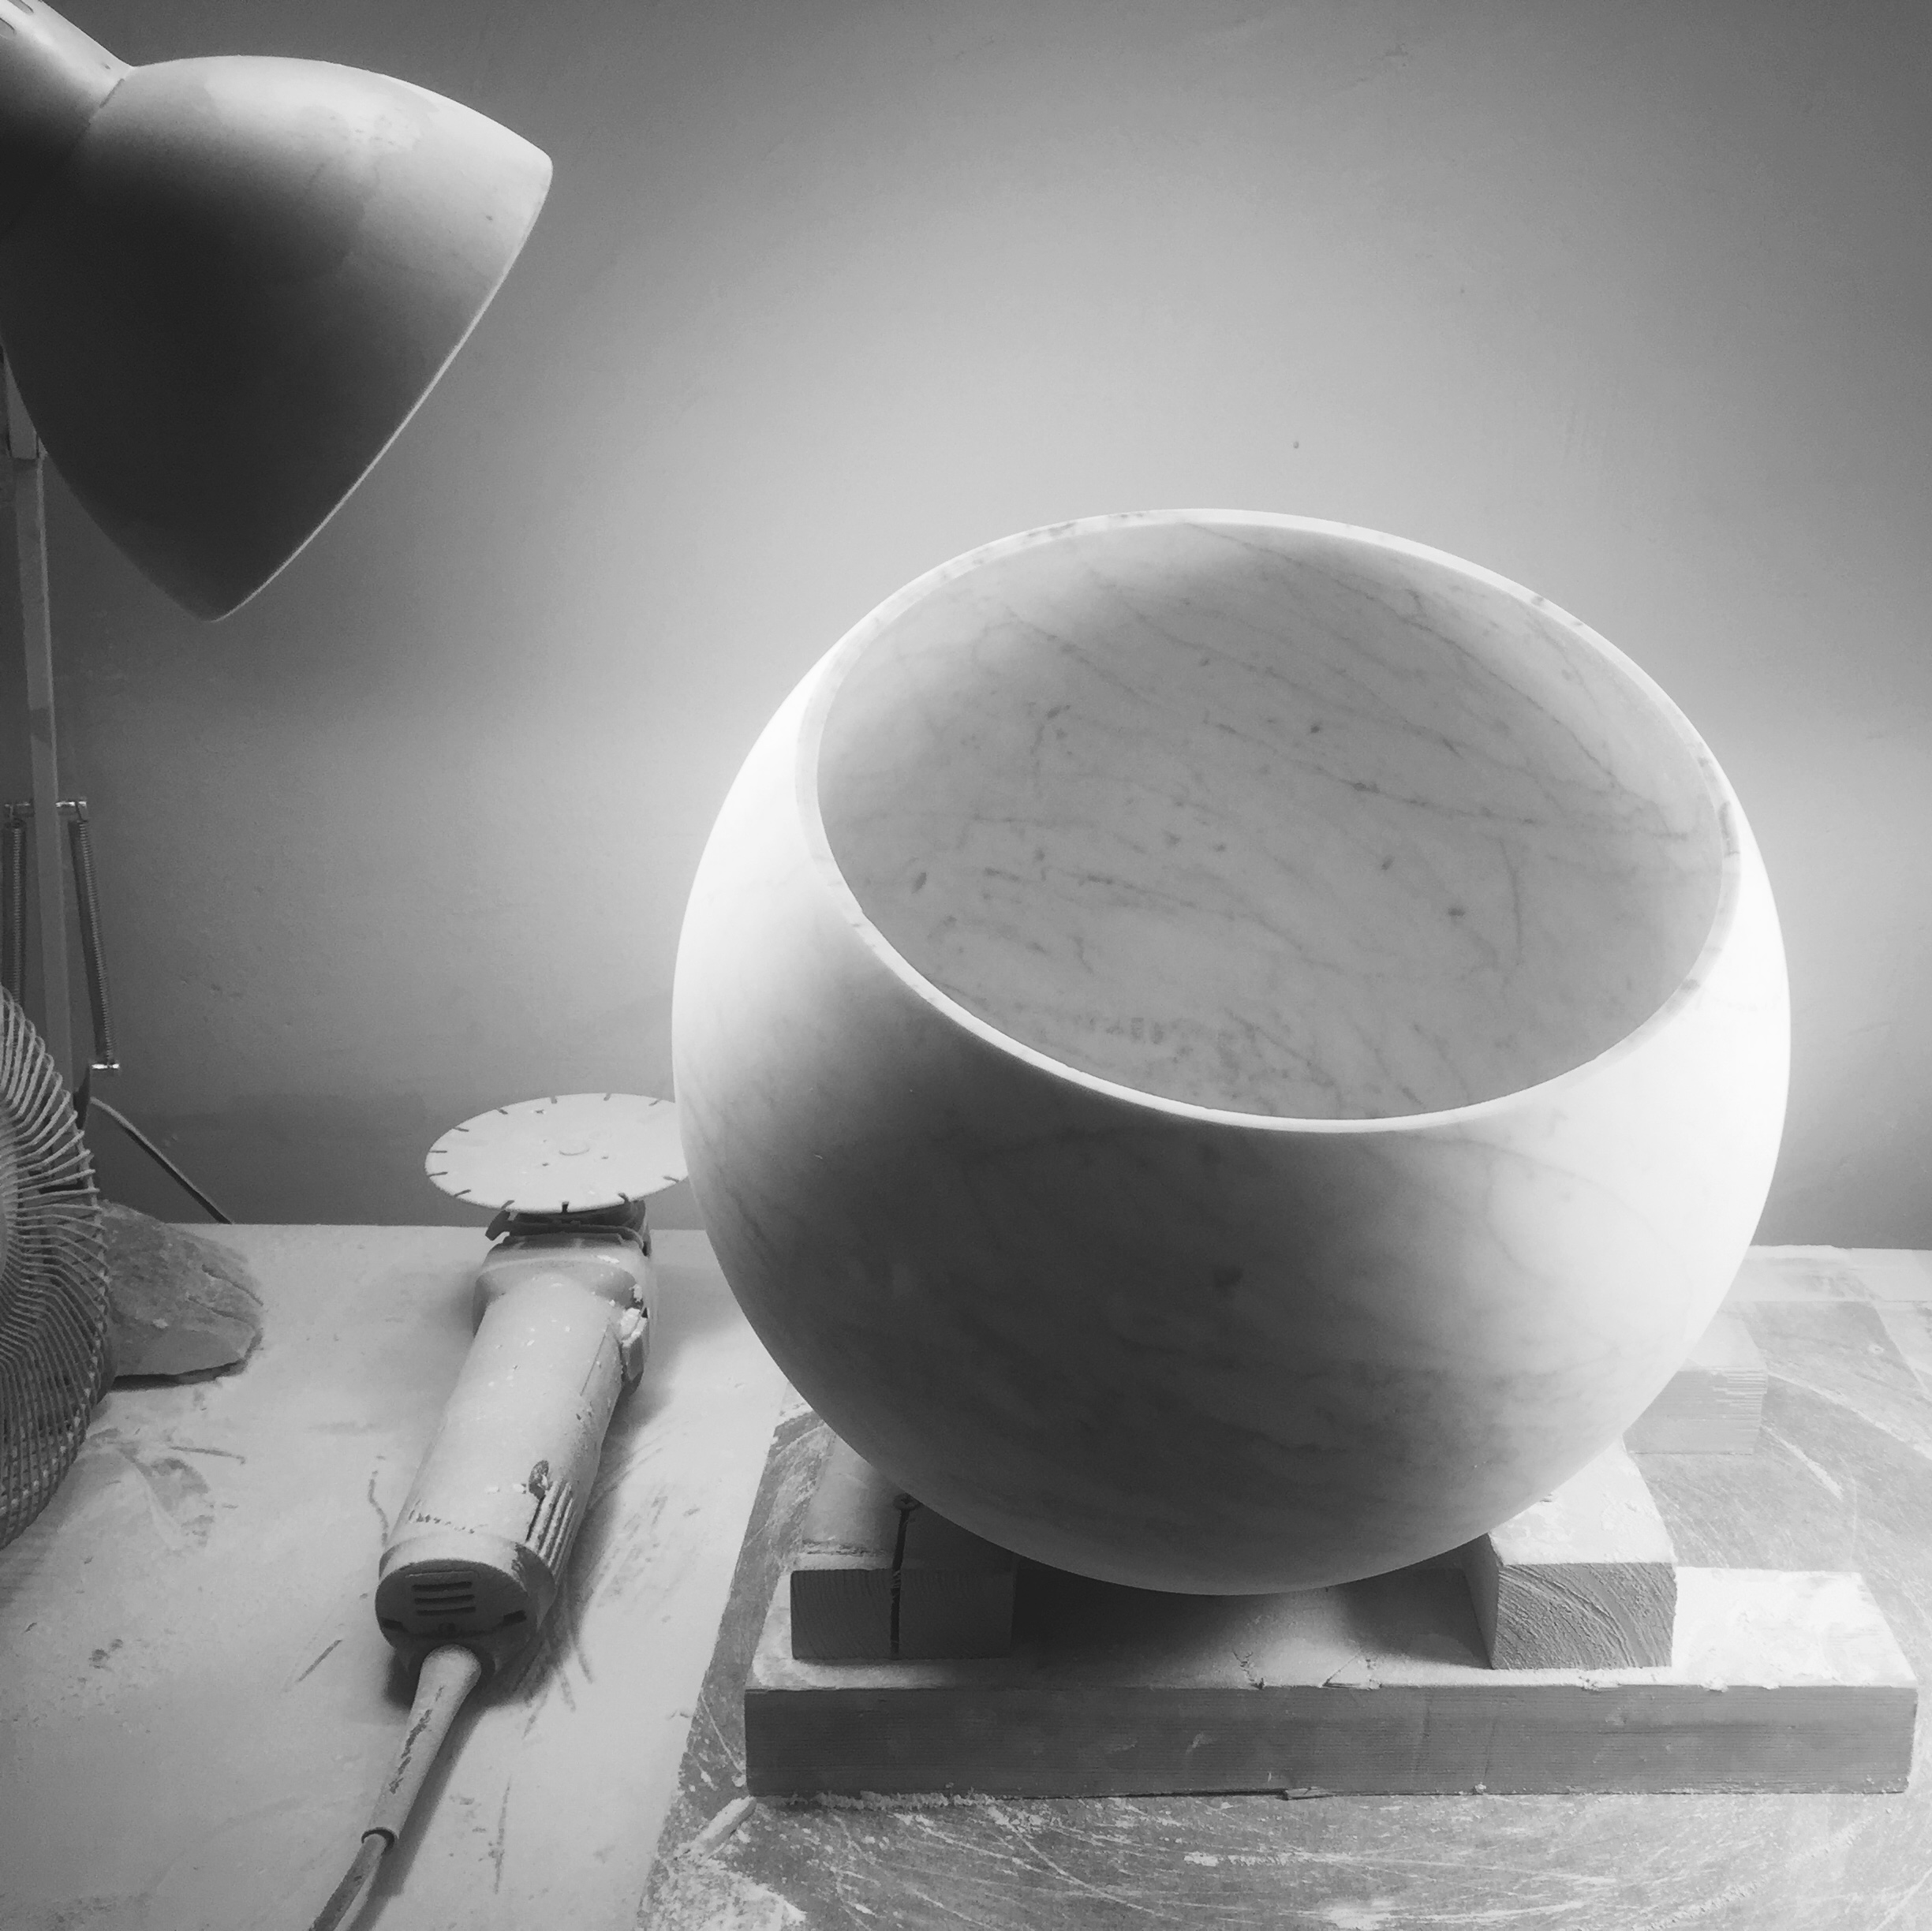 02_Untitled, White Sphere Bowl.